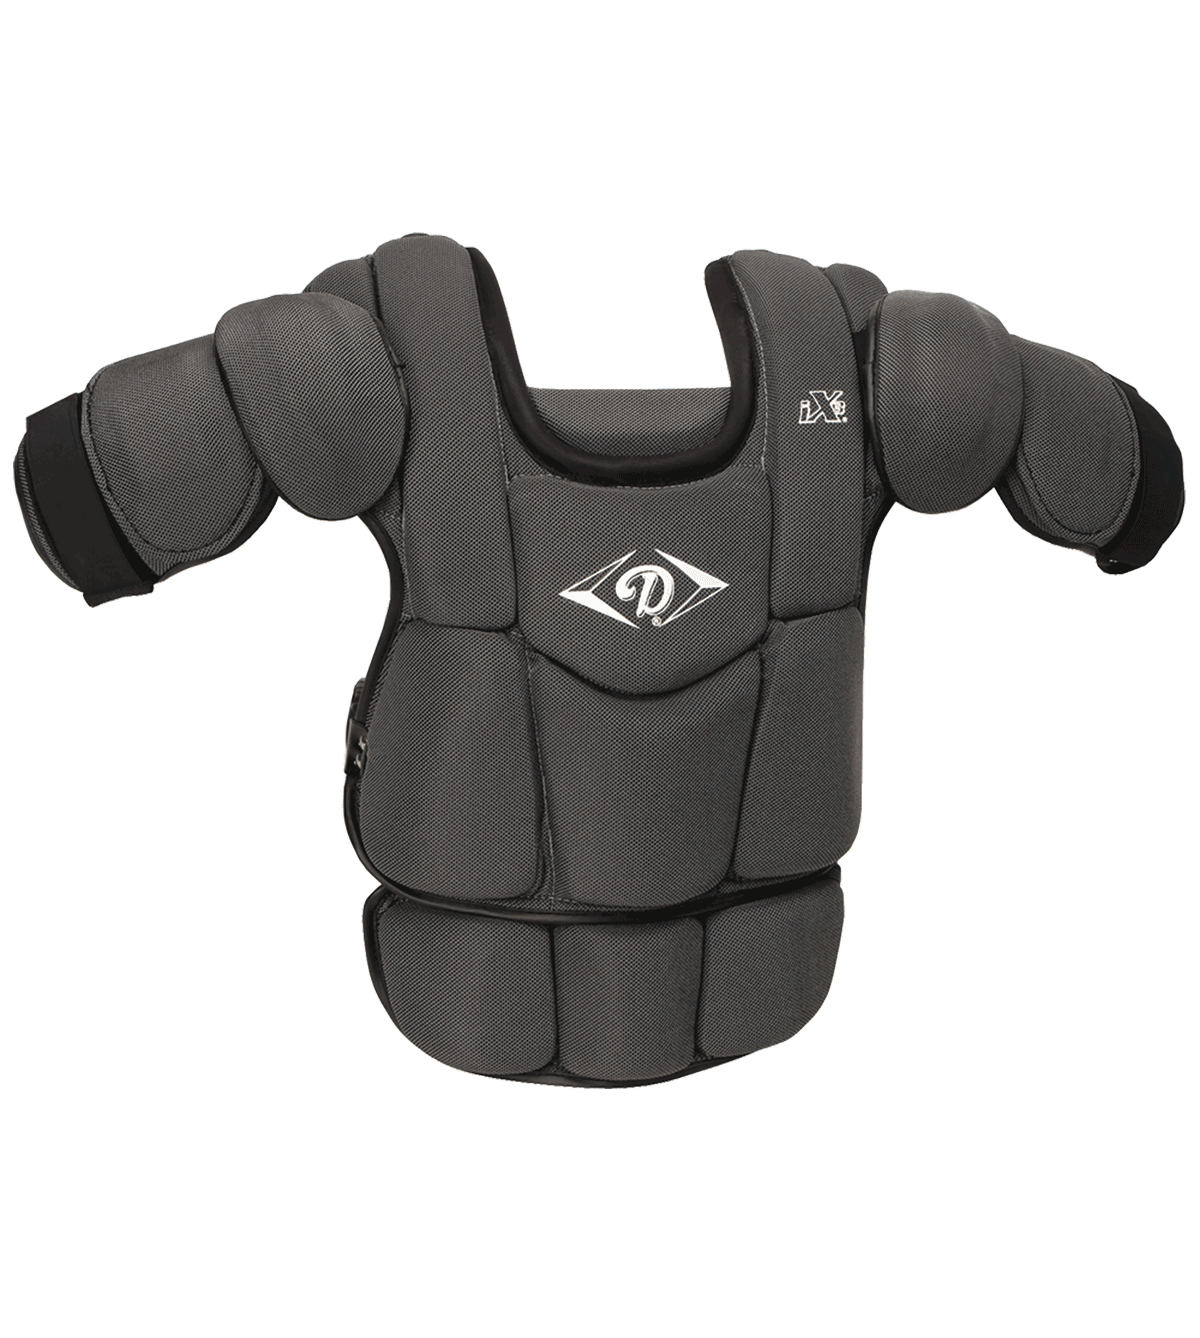 Diamond iX3 Chest Protector